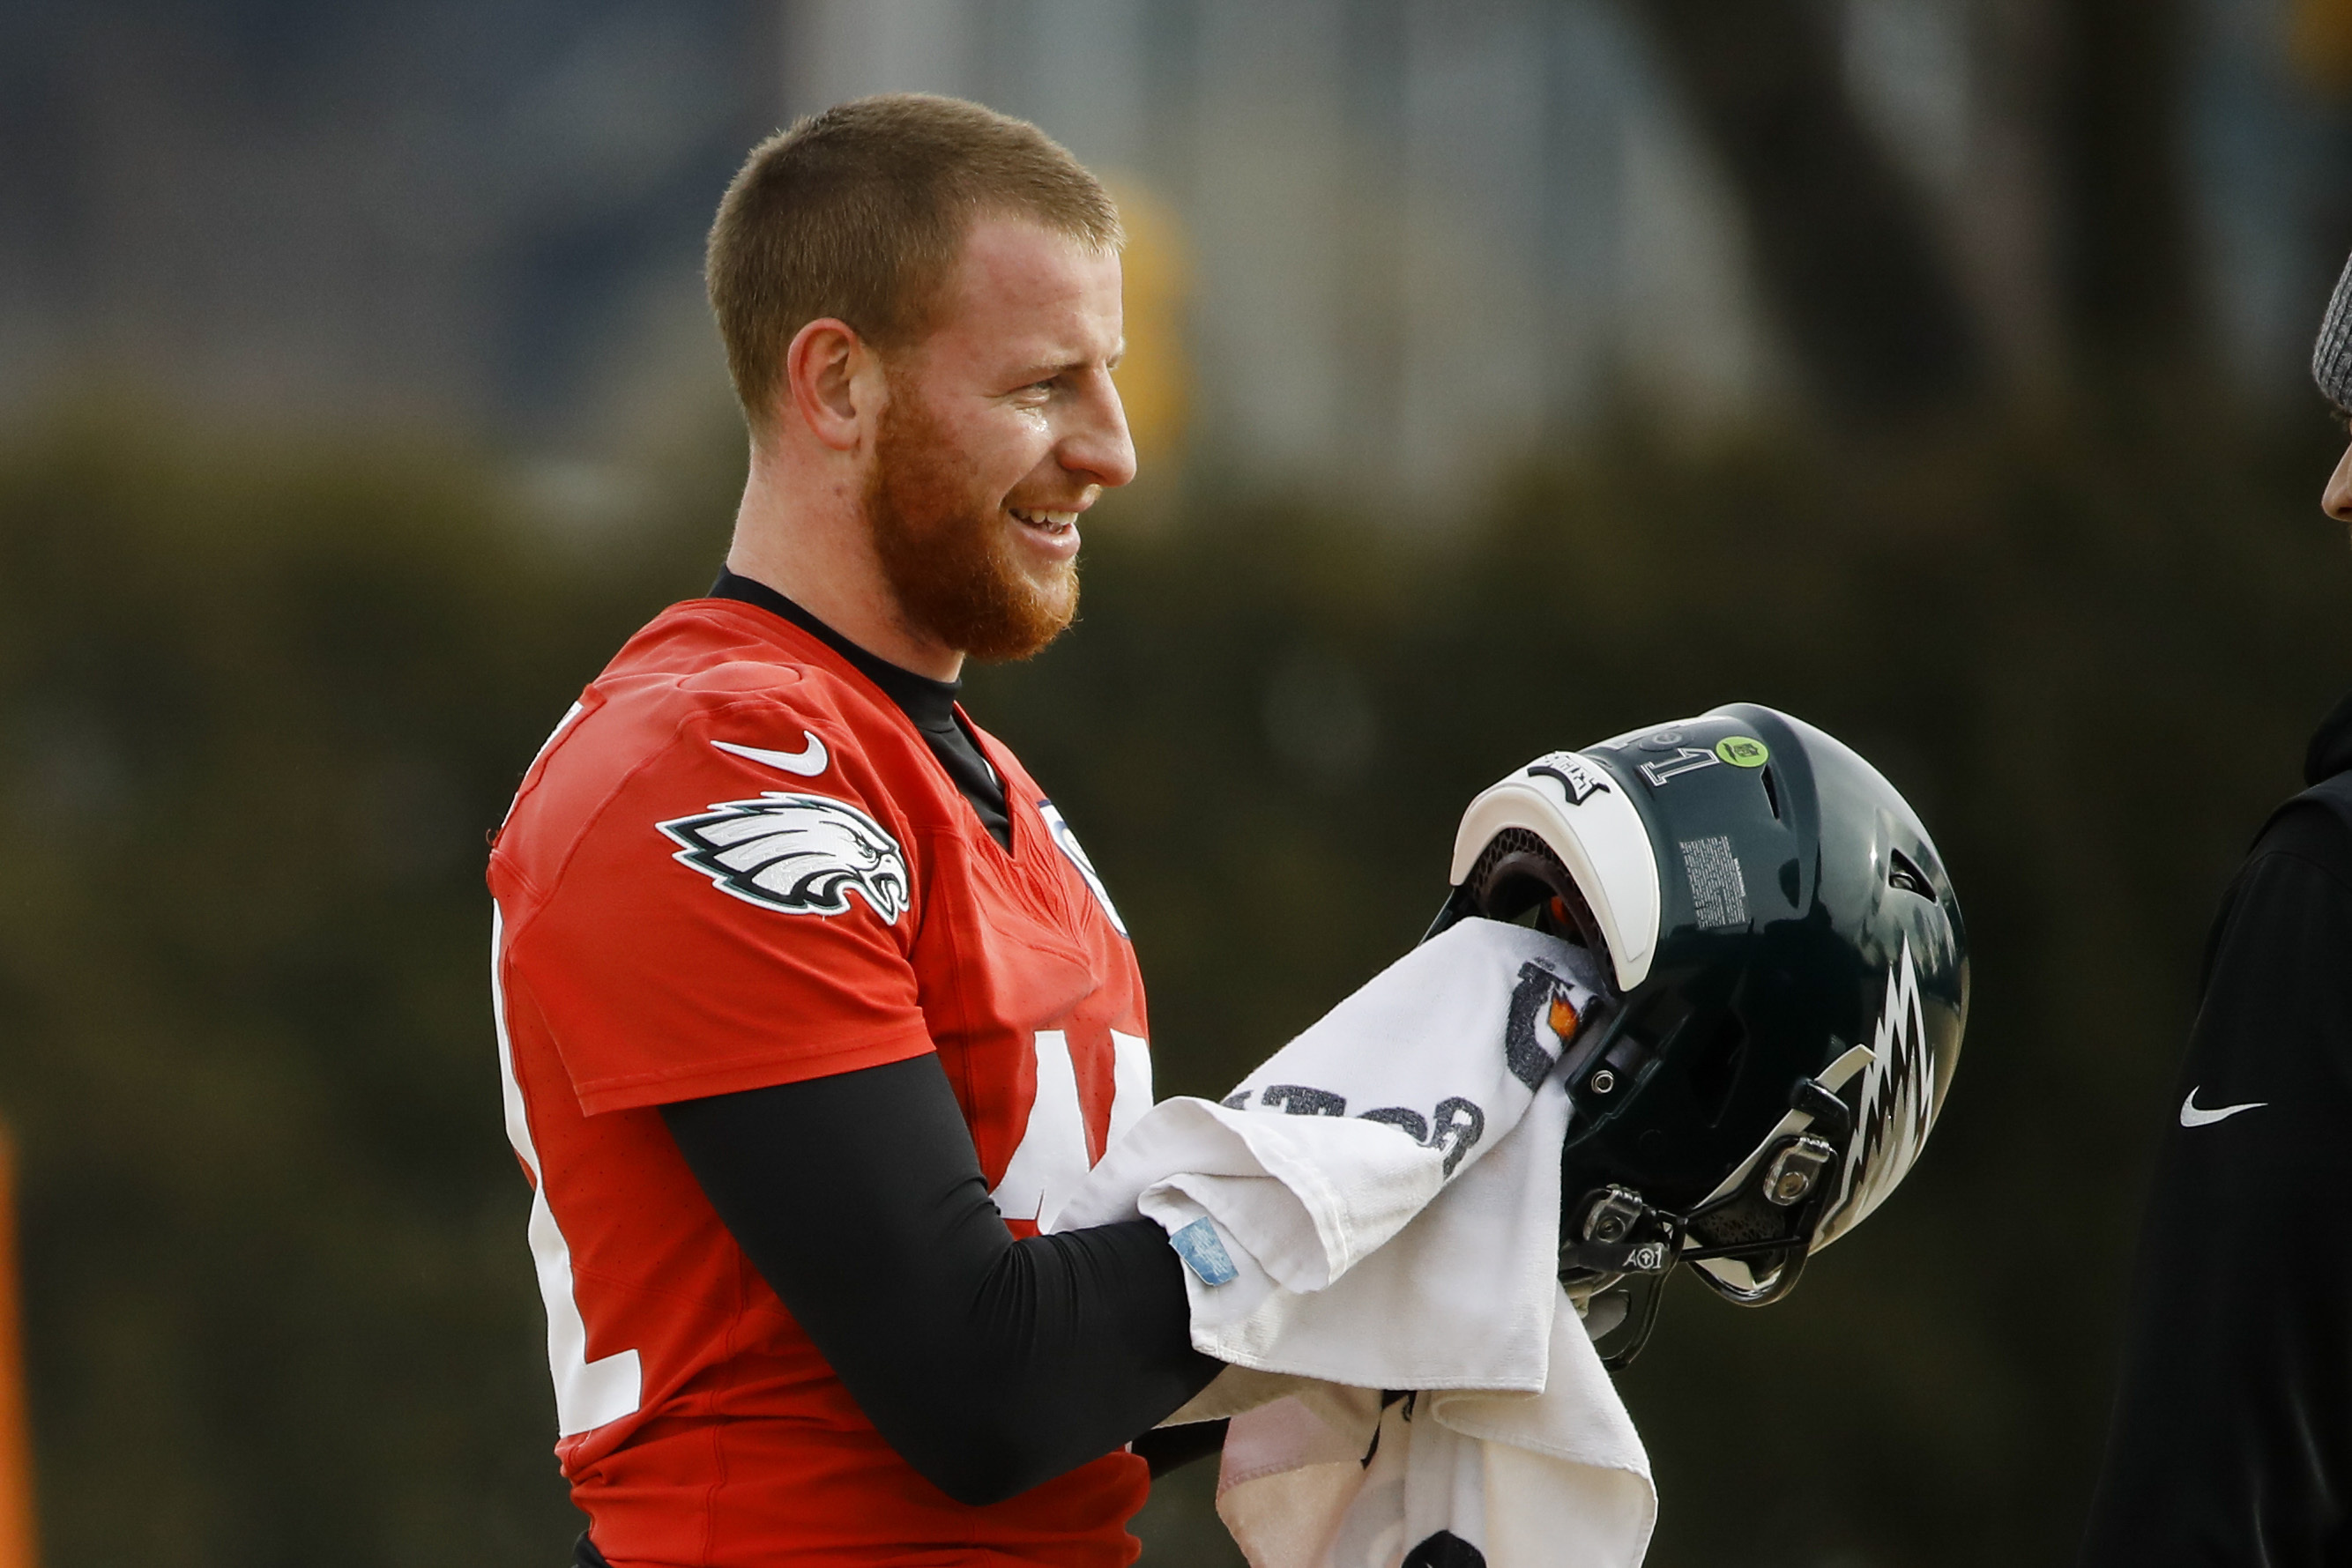 Eagles Carson Wentz Wife Maddie Welcome Baby Daughter Pennlive Com